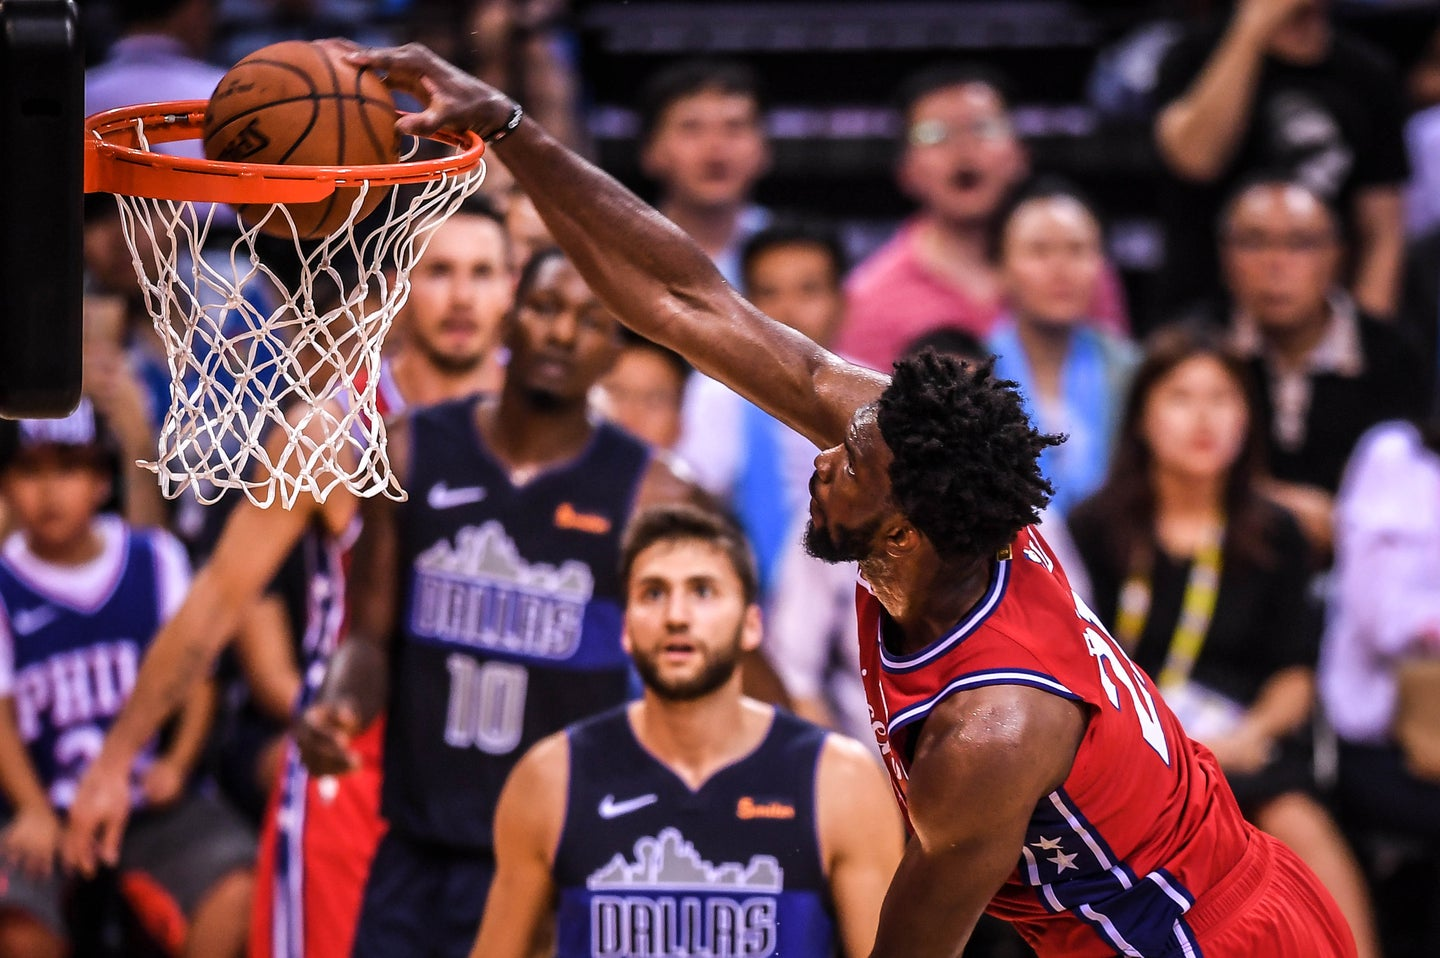 Joel Embiid of the Philadelphia 76ers pulls his 7-foot frame into a well-balanced dunk form.